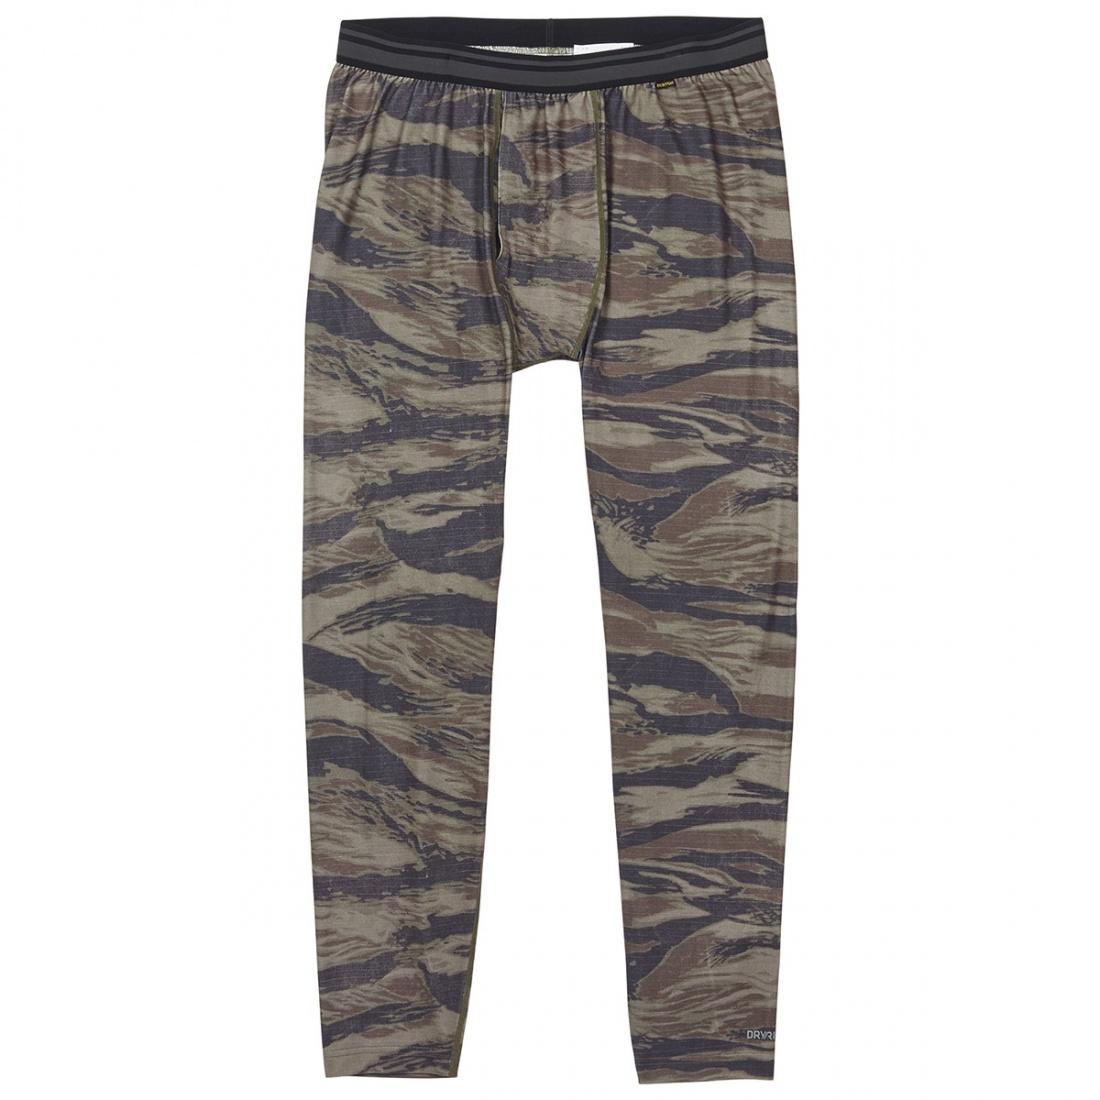 Burton Термобелье Burton Midweight Base Layer Pant OLIVE GRN WORN TIGER, , , FW18 XL burton термобелье burton midweight base layer pant true black fw18 xl